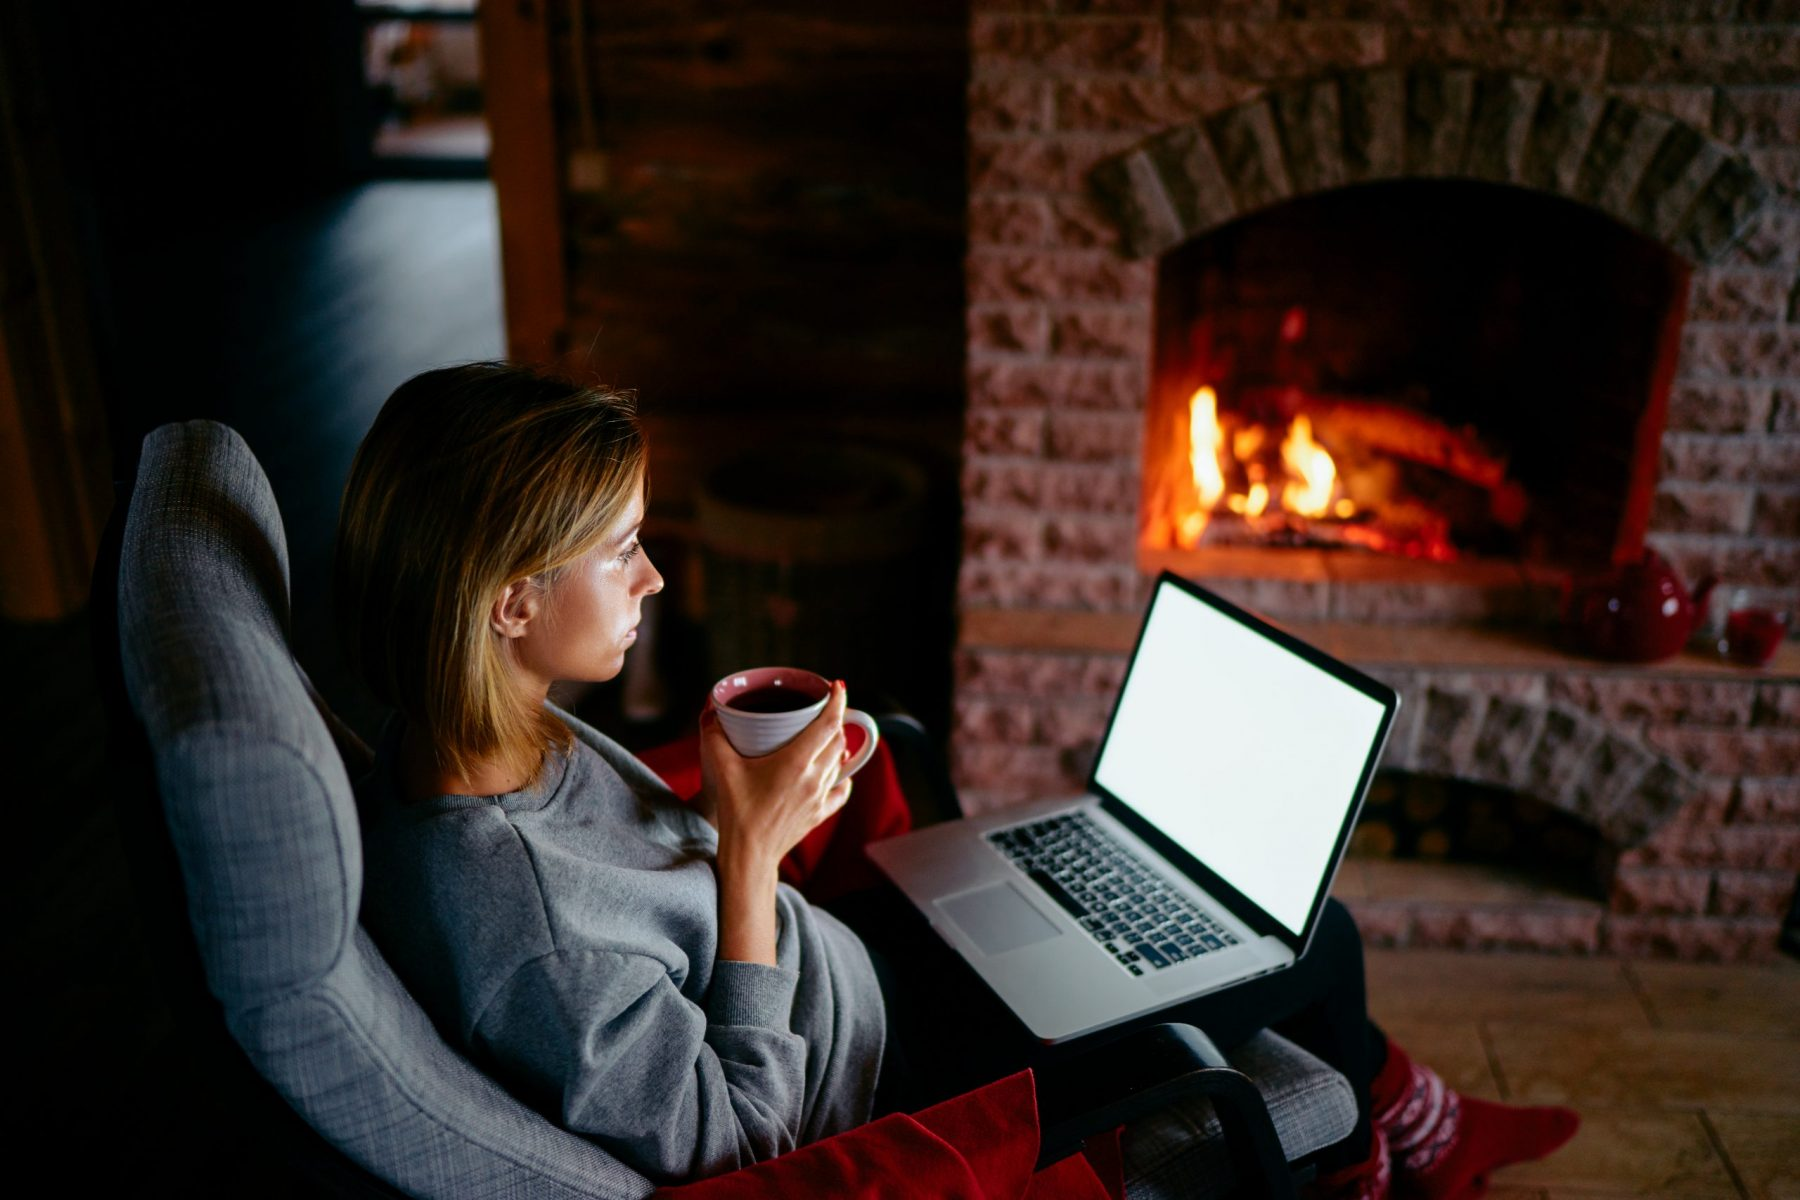 Cape Cod Woman Working from Home and Using More Energy